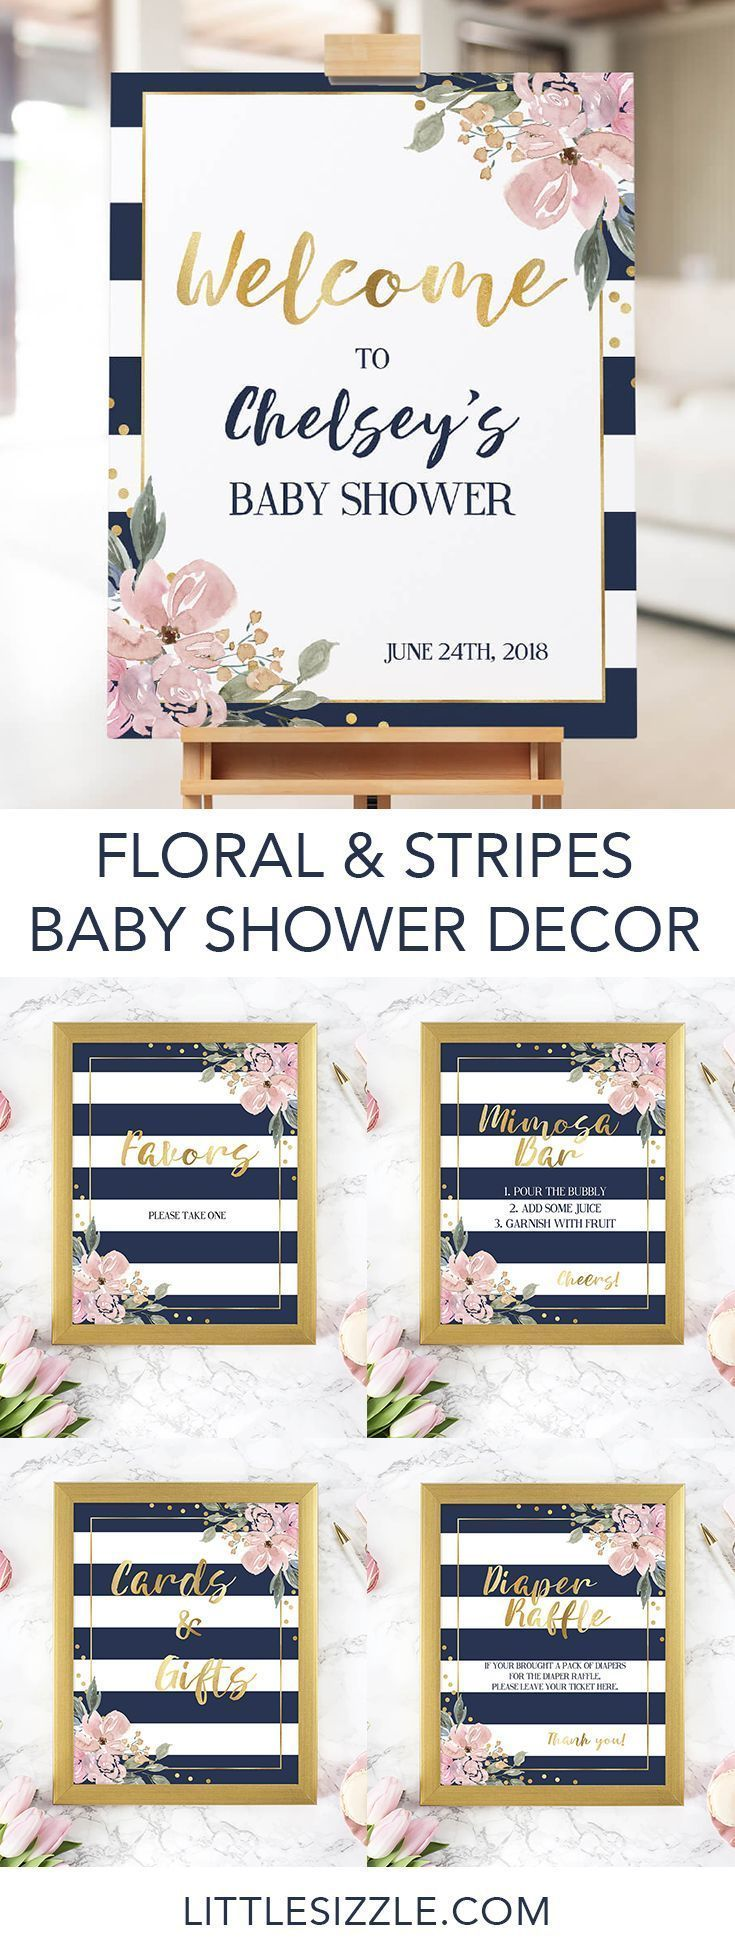 black and white stripes girl floral bring a book digital file instant download Black and White Floral Book Request Baby Shower Printable